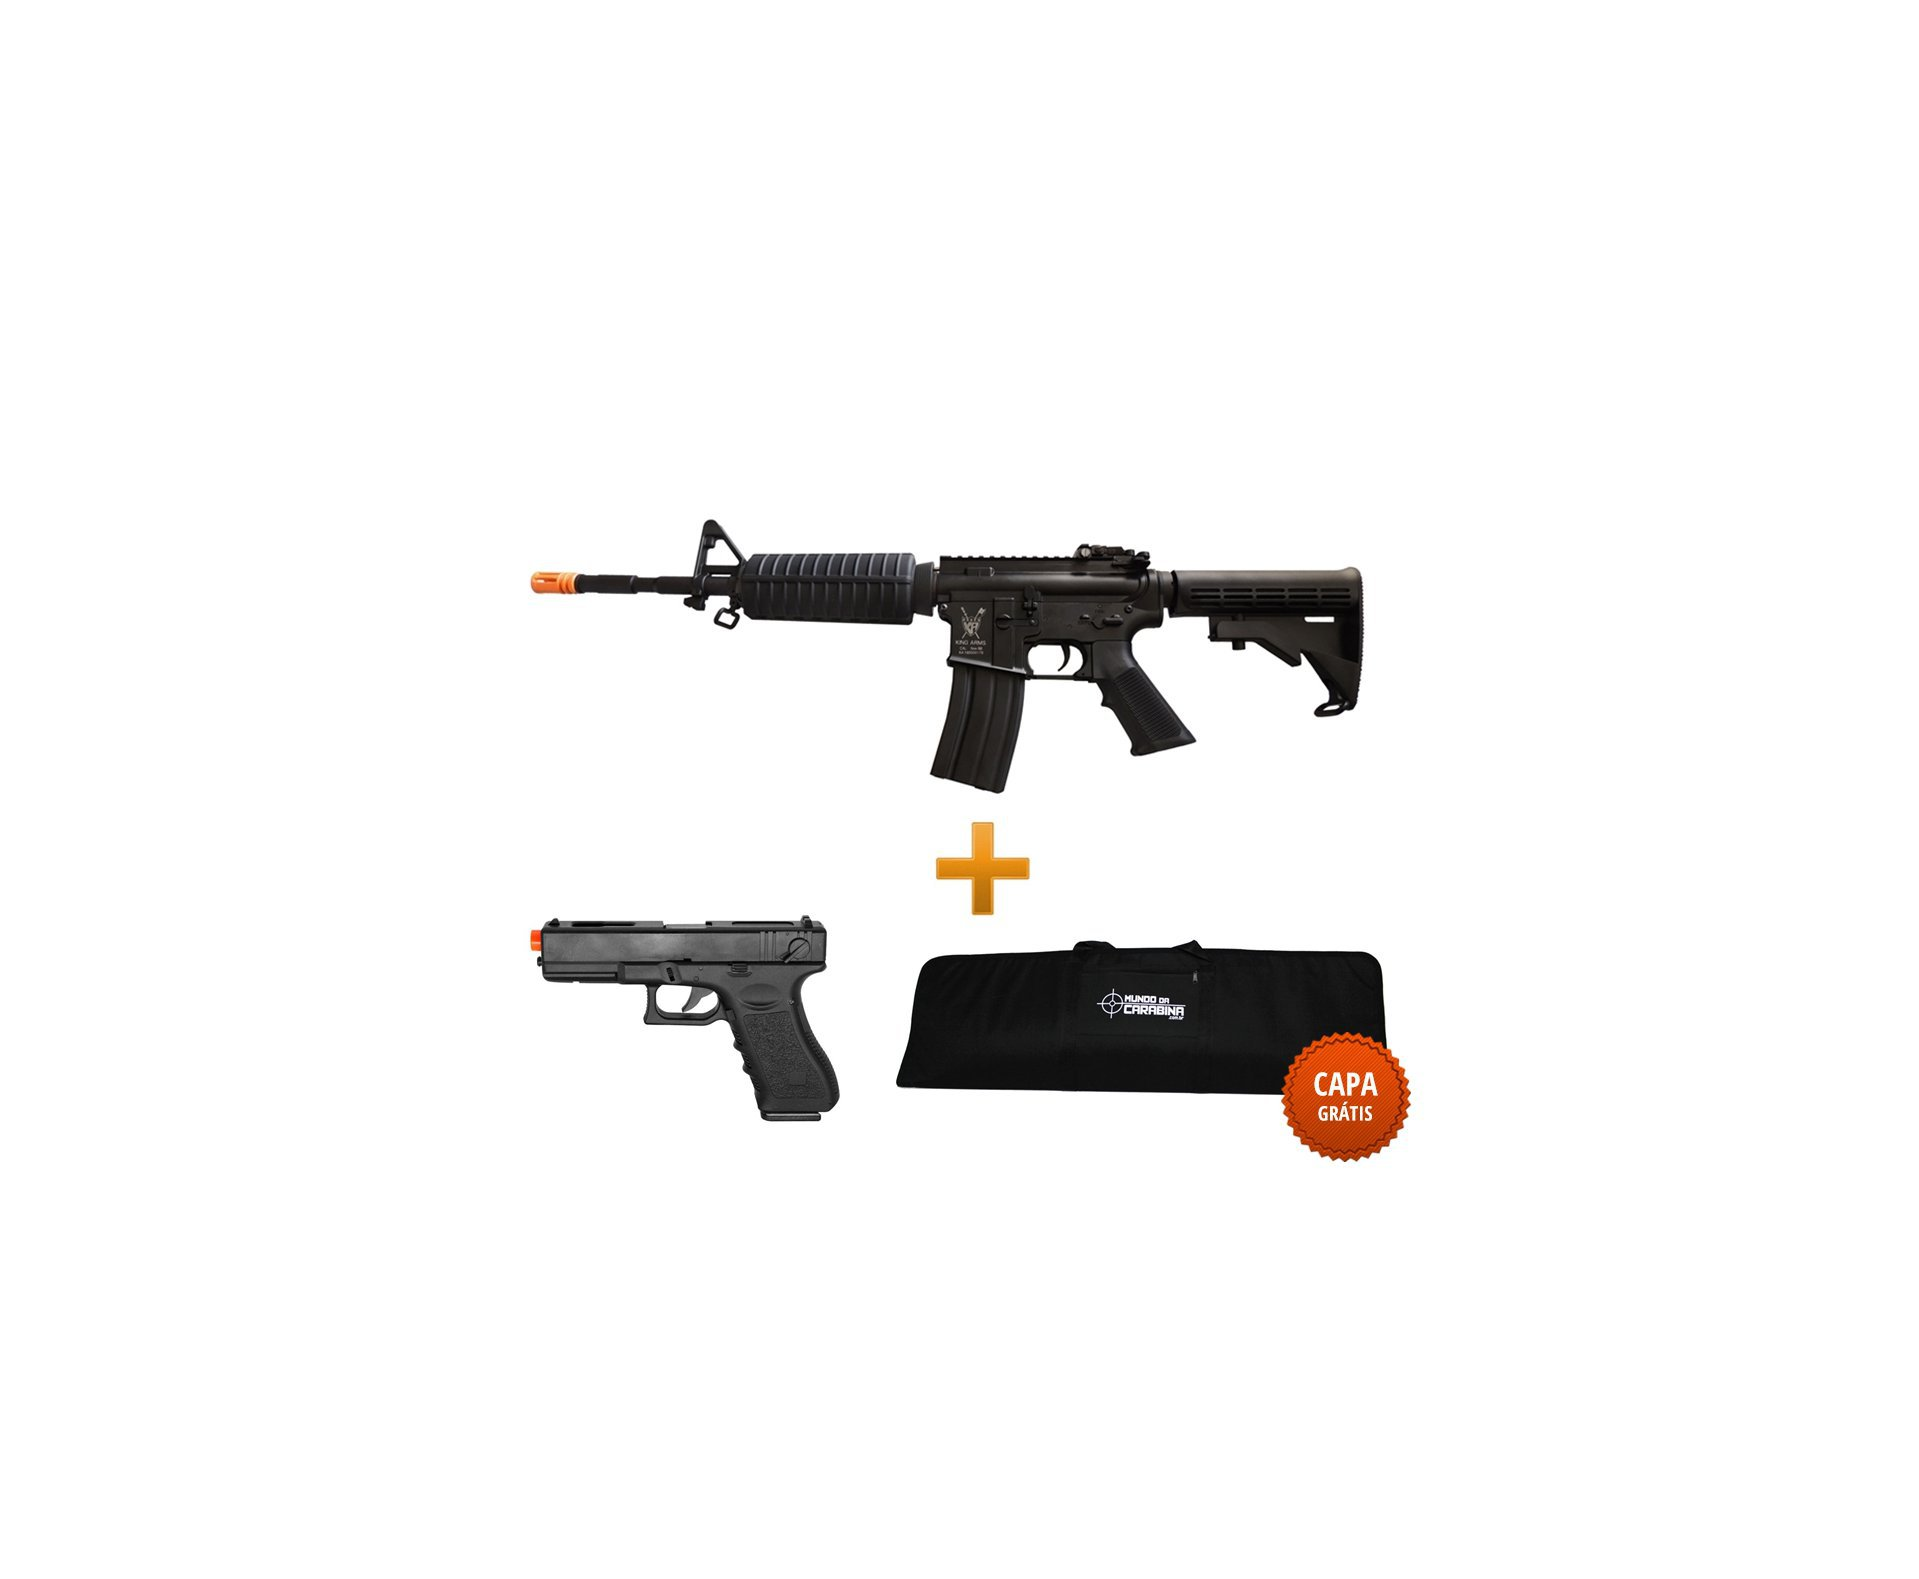 Rifle De Airsoft M4a1 Advance Full Metal Cal 6.0mm - King Arms + Pistola Glock Eletrica + Case